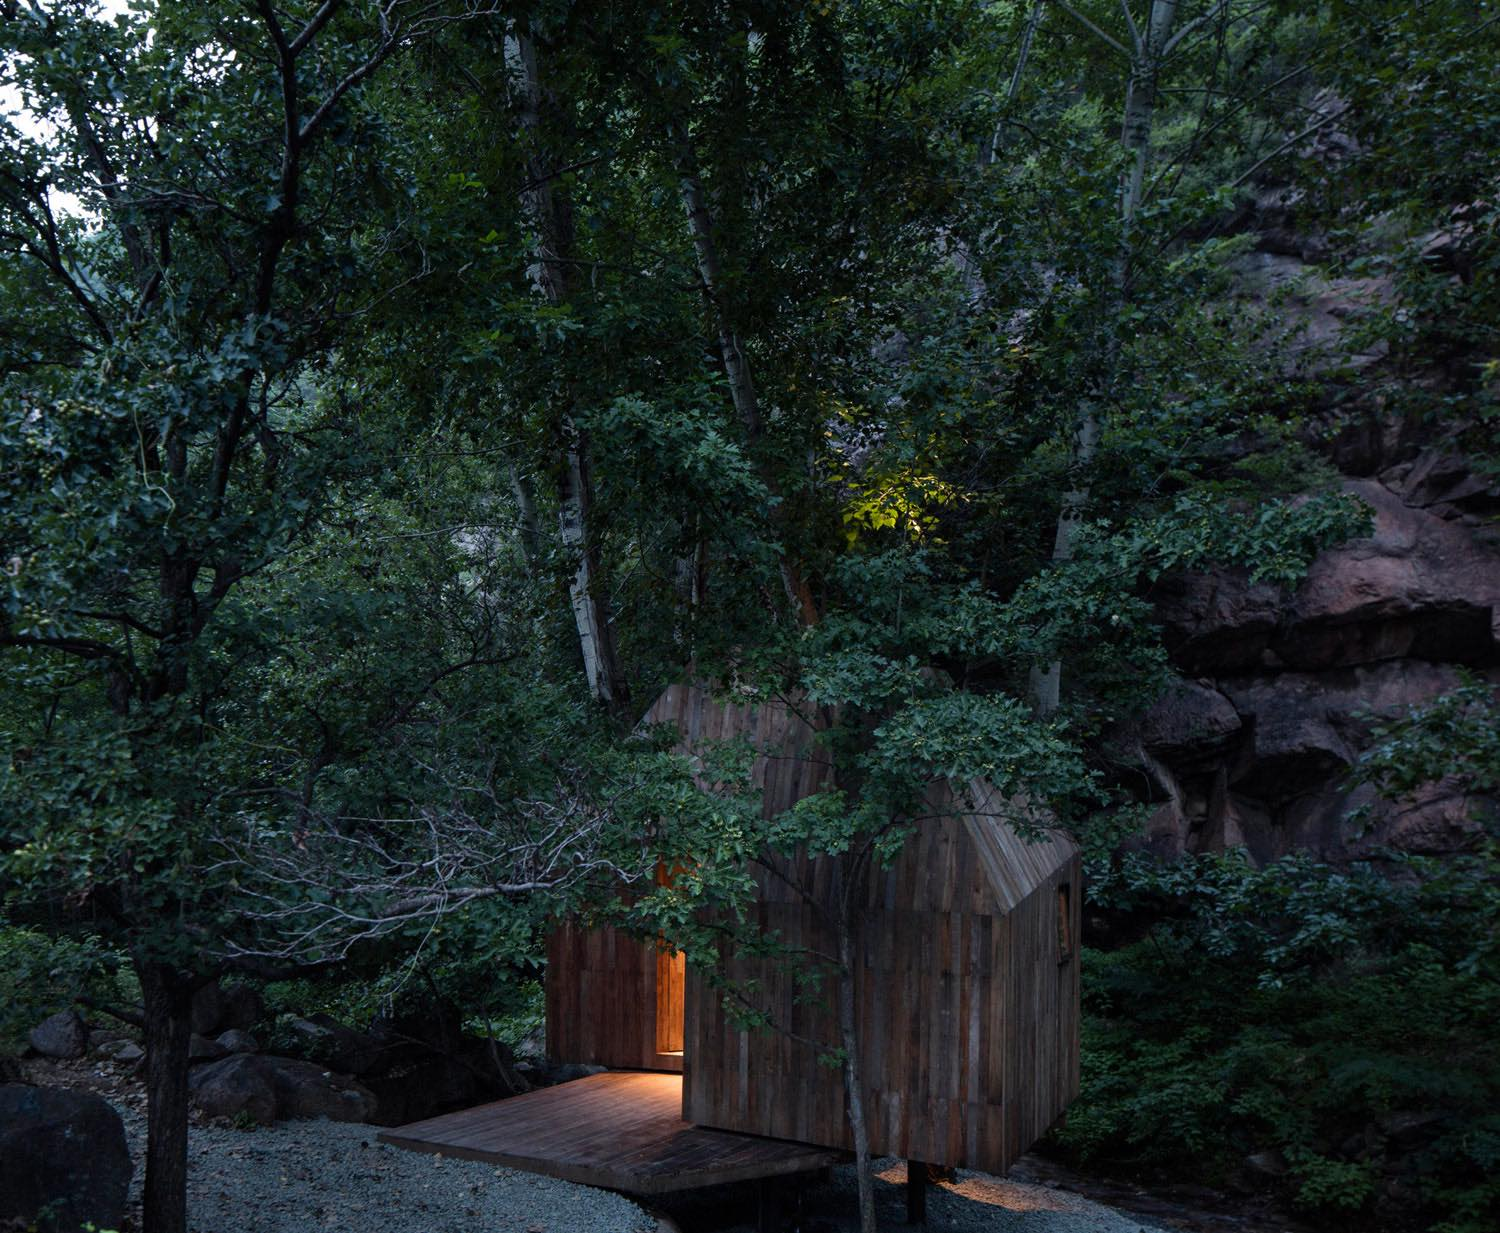 Architecture-Wee-Studio-Treehouse-11